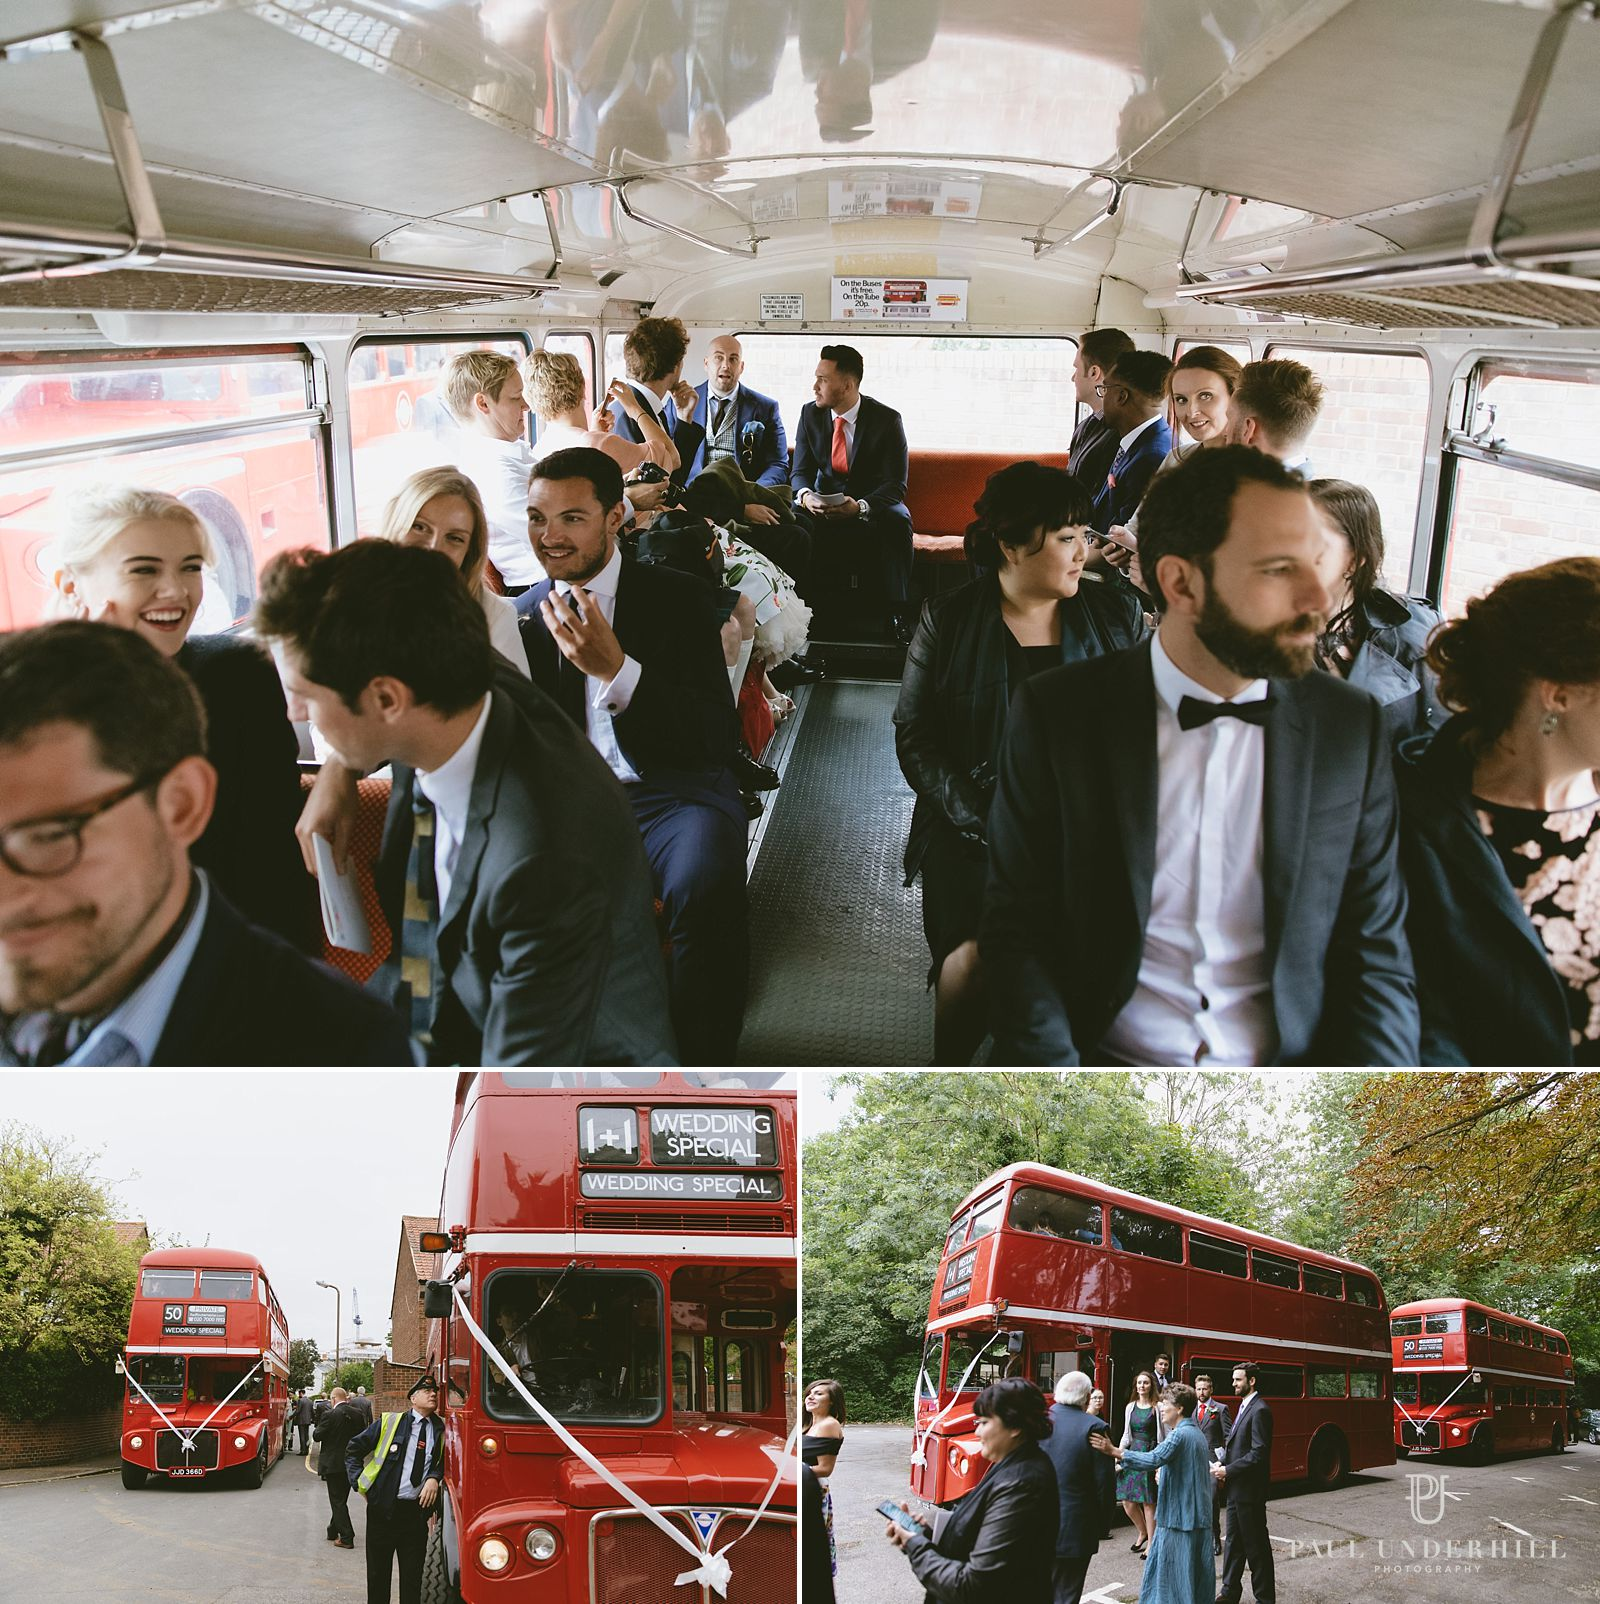 london-wedding-bus